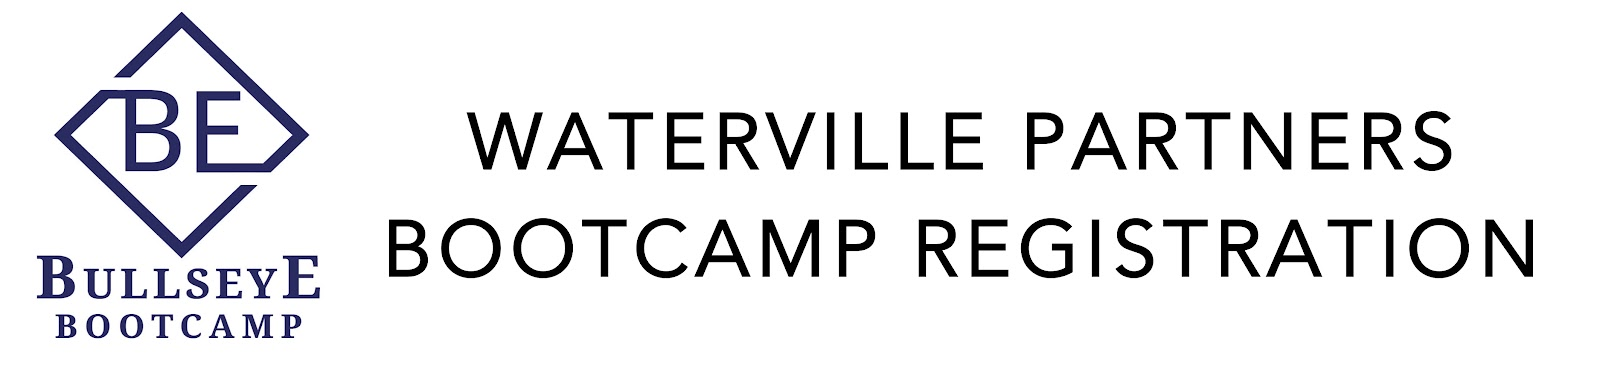 Thank you for your interest in Waterville Partners BootCamps!